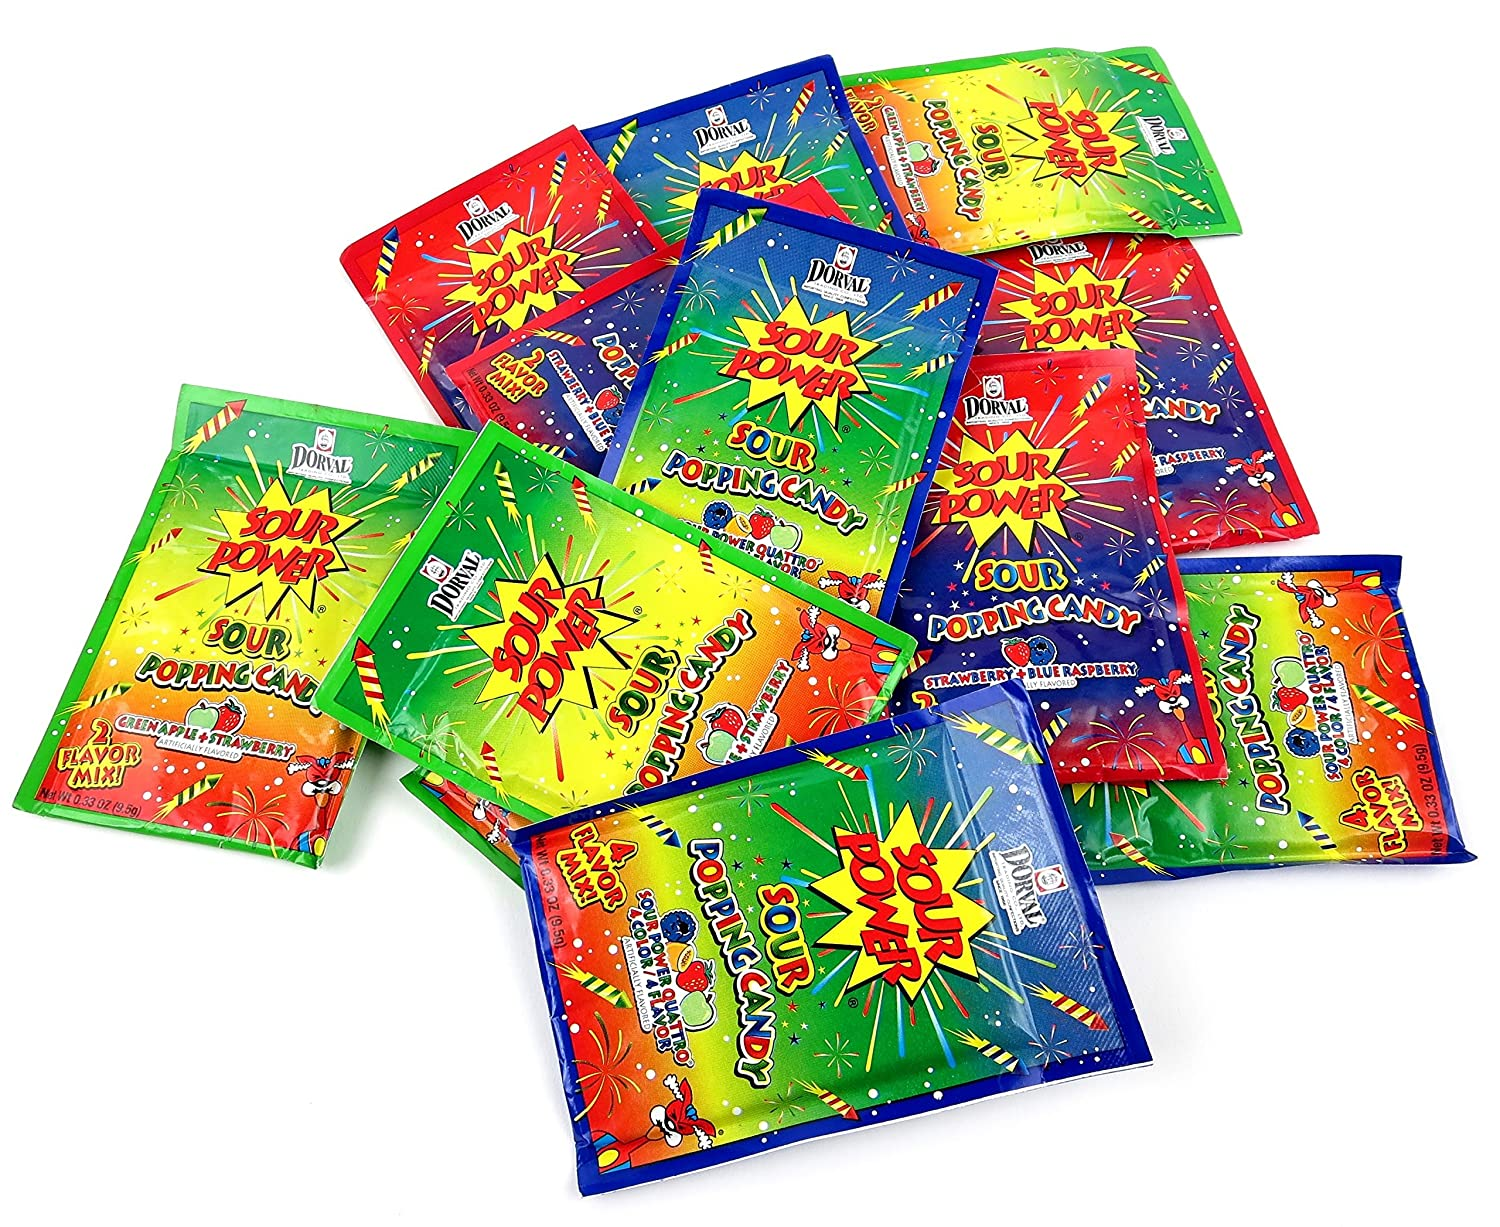 Amazon dorval sour power sour popping candy 3 flavor variety amazon dorval sour power sour popping candy 3 flavor variety four 033 oz packets each of strawberry blue raspberry green apple strawberry solutioingenieria Image collections